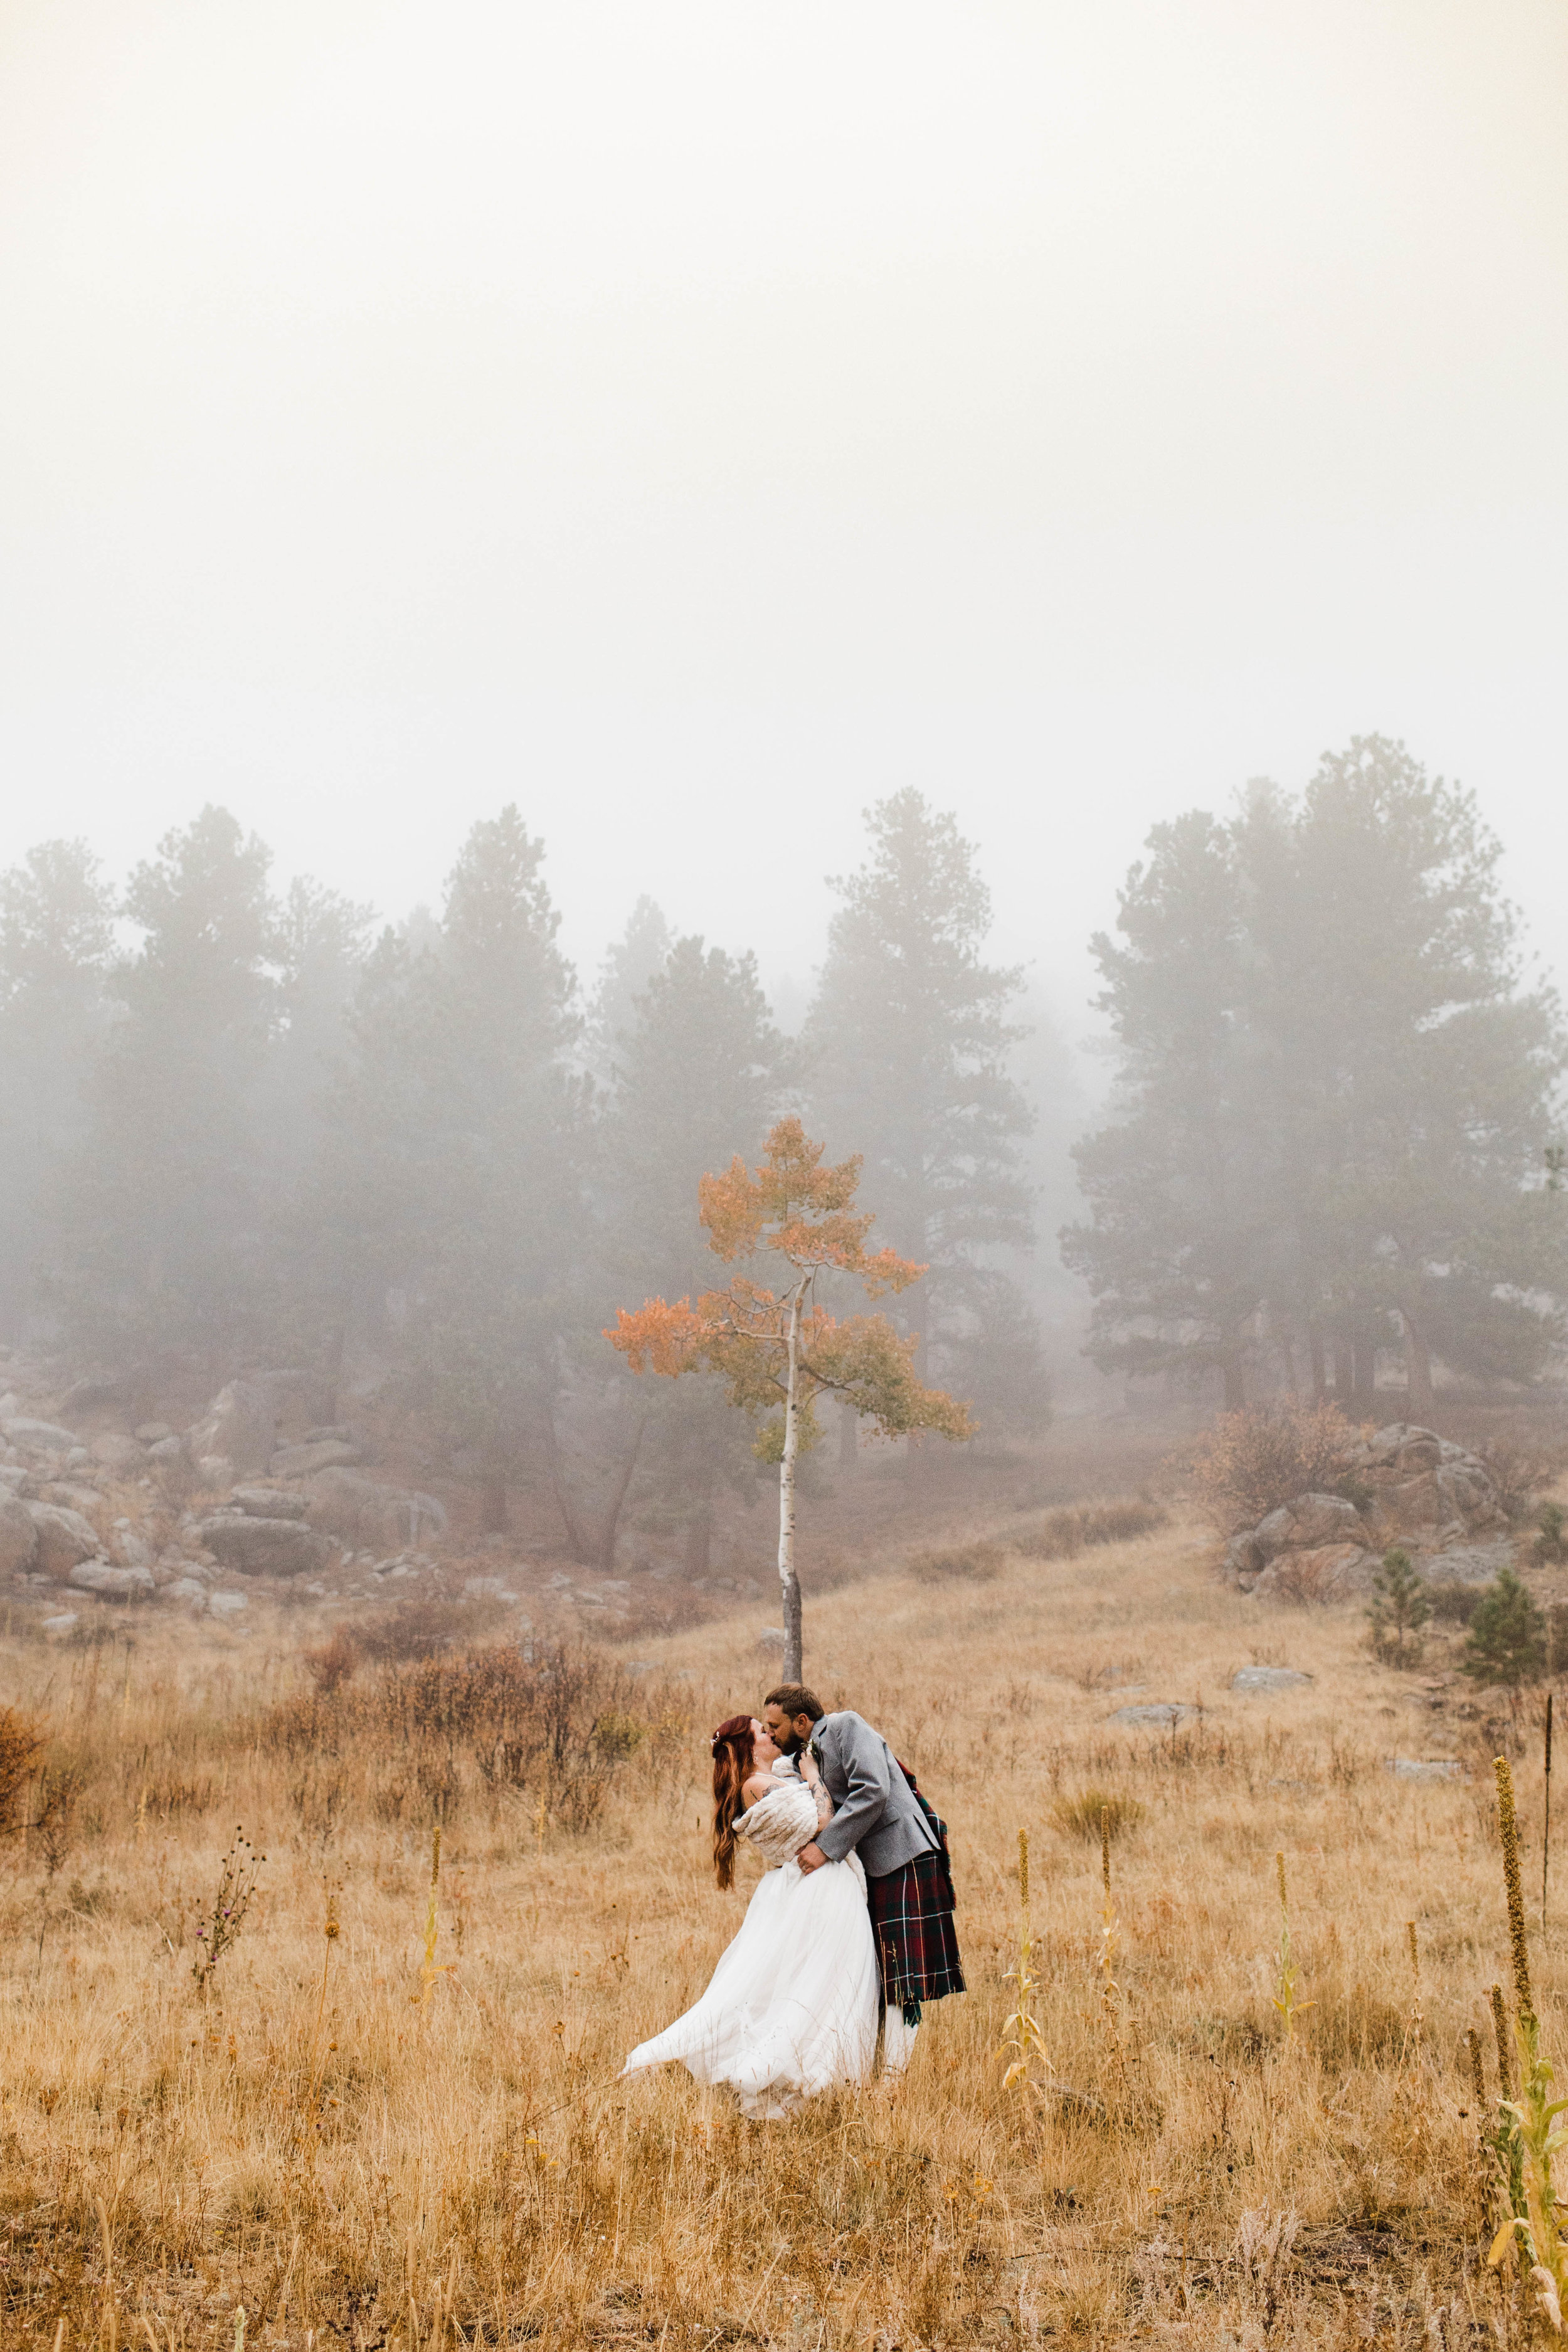 Fall mountain adventure wedding at Della Terra in Estes Park | Colorado adventure wedding photographers